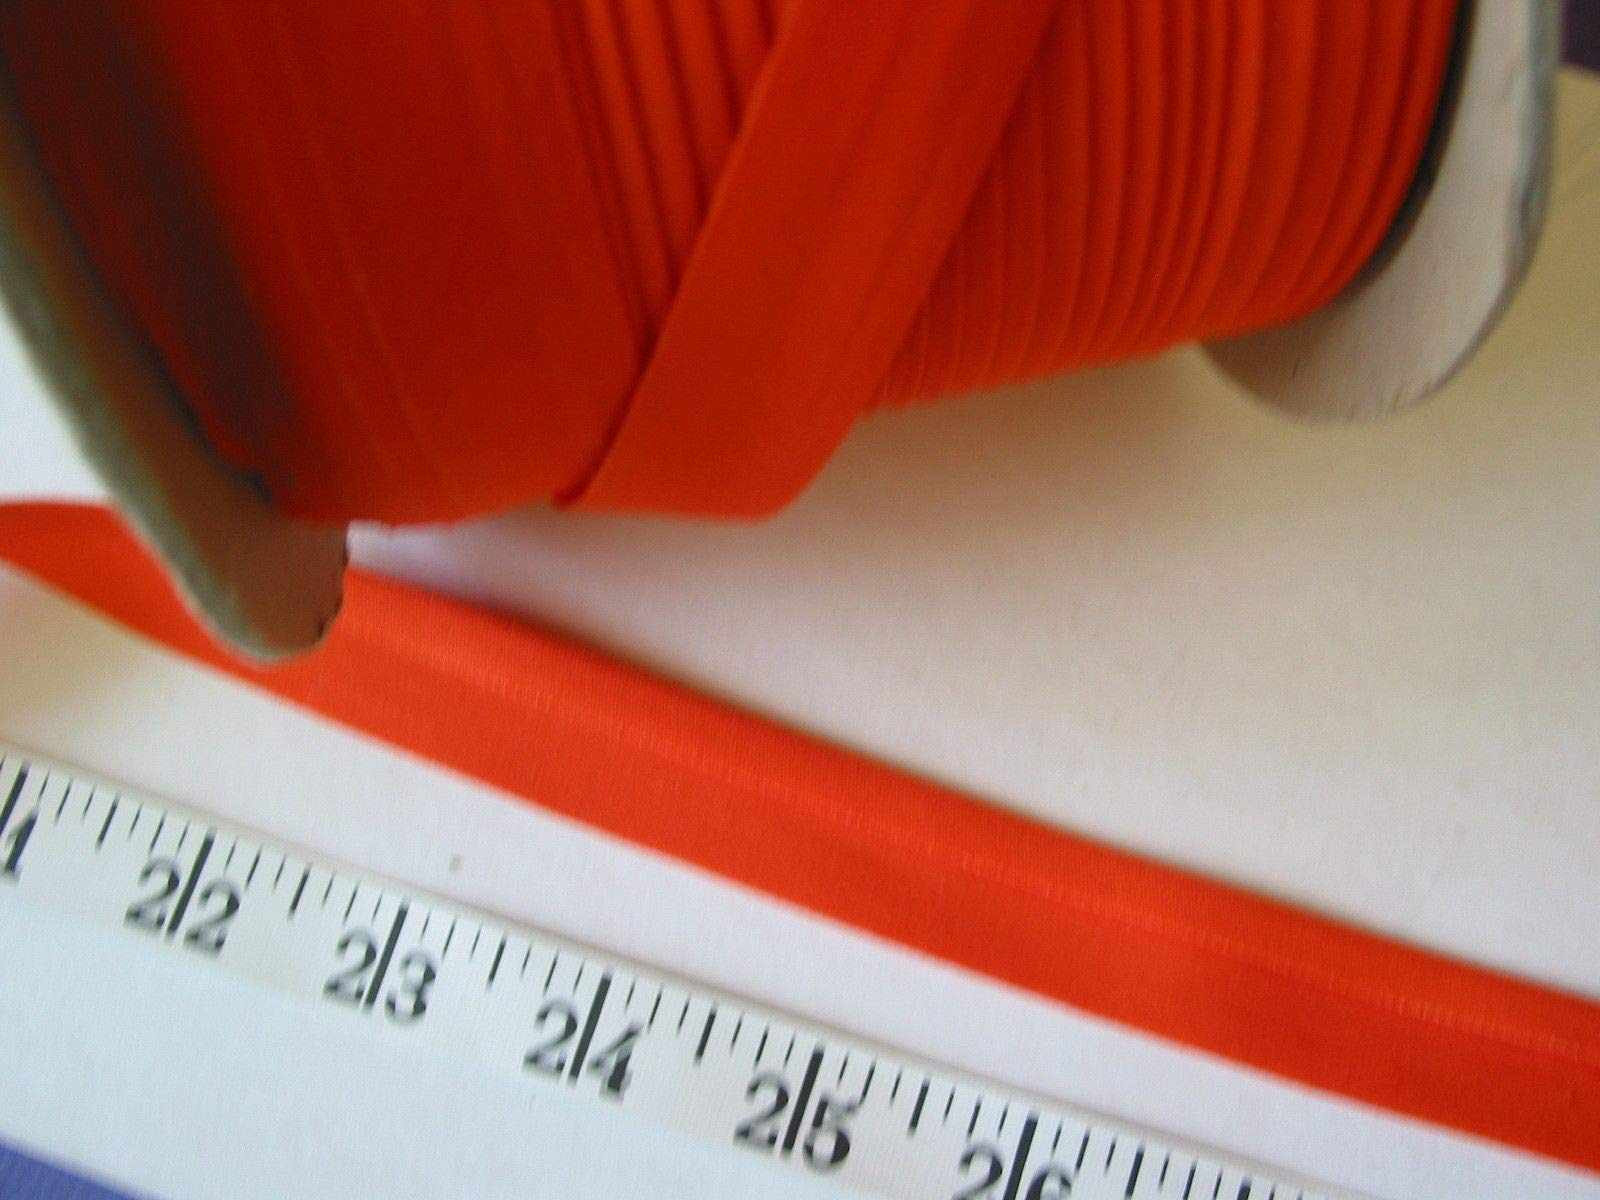 Bias Binding Tape Poly Cotton Orange 3/4 One Fold 175? Yd Roll by Gonling